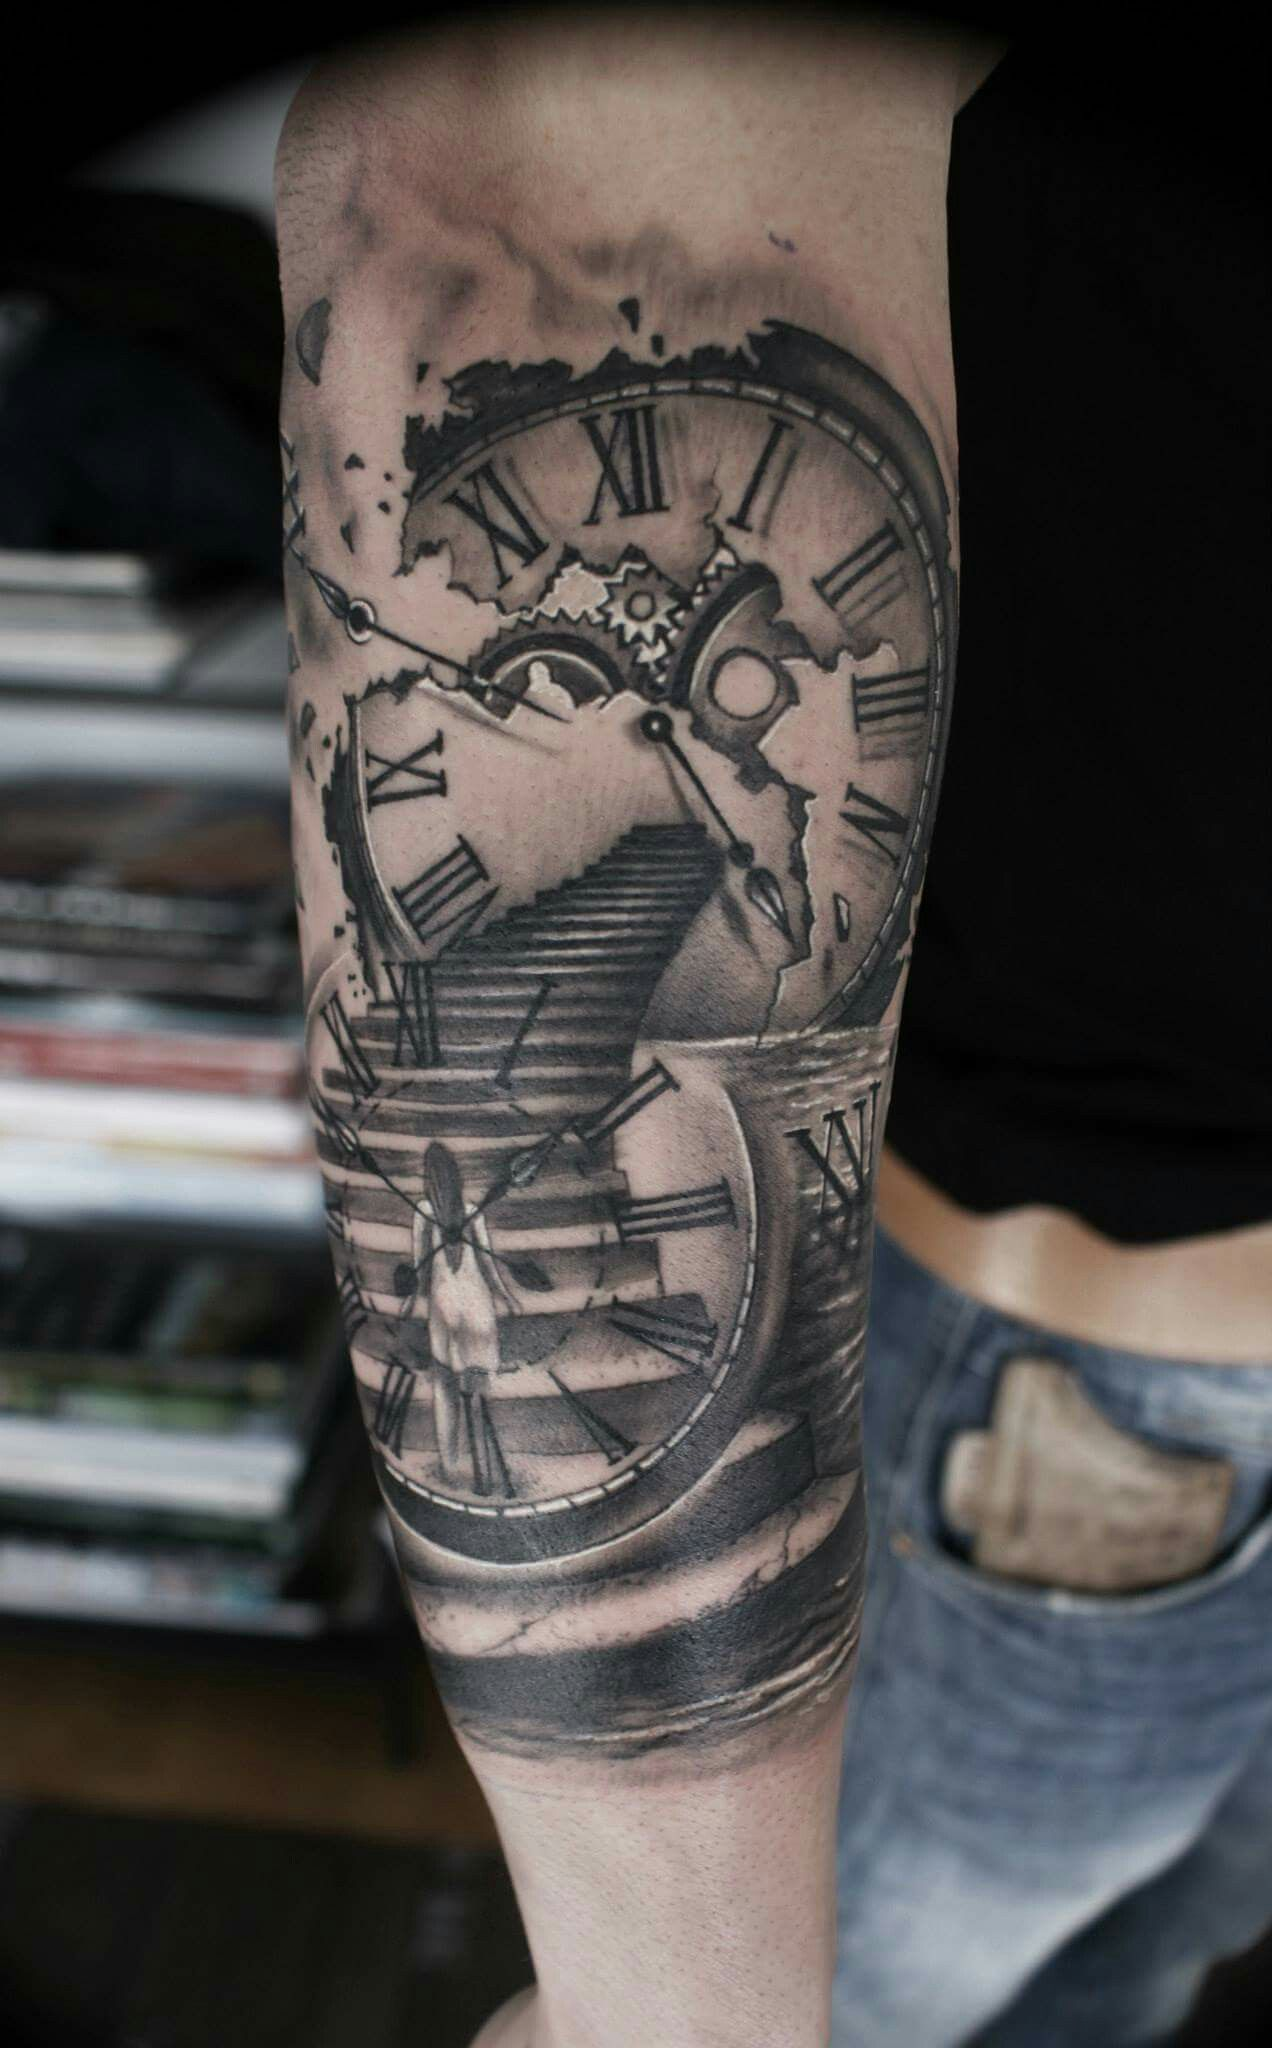 Treppe Tattoo Vaidis2 Tattoos Tattoos Religous Tattoo Tattoo Designs